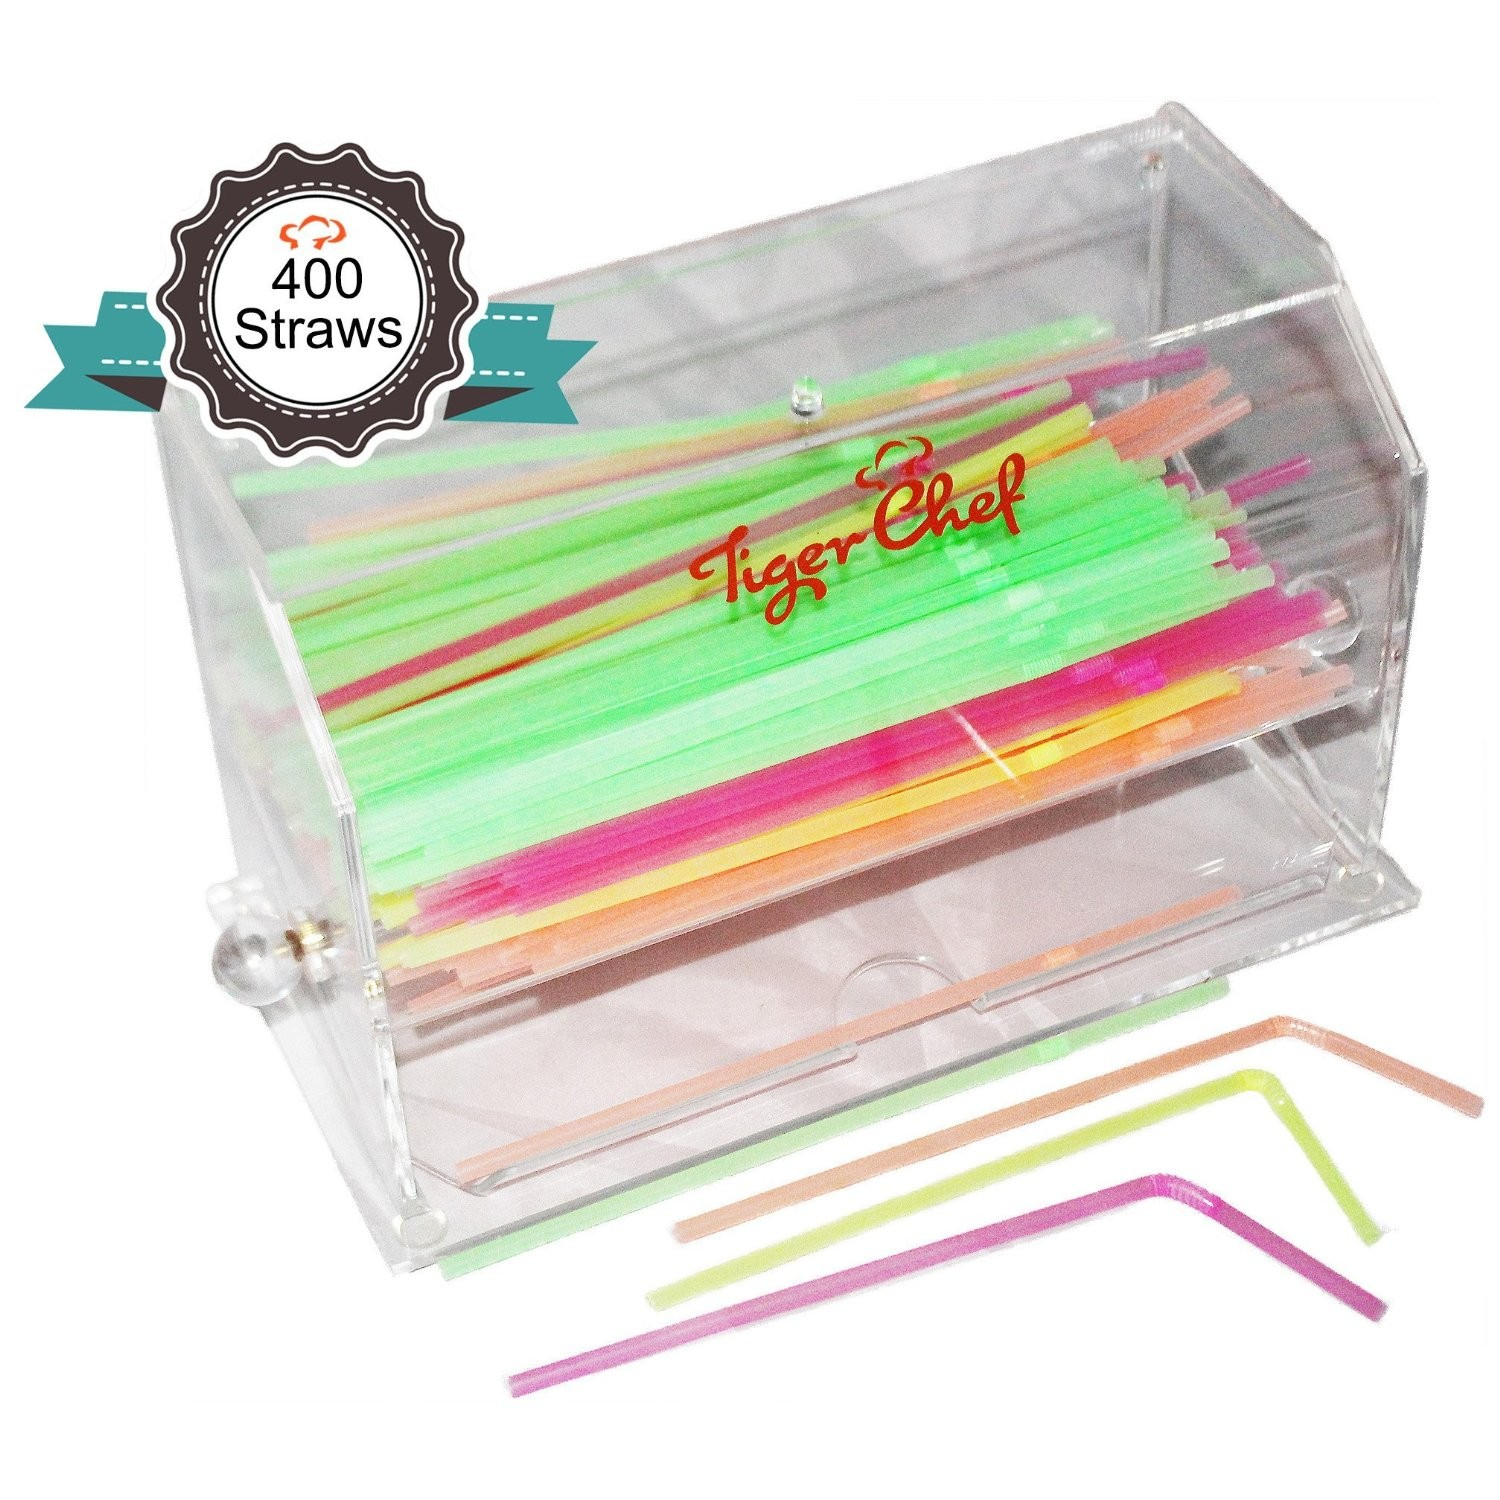 TigerChef Acrylic Straw Dispenser with 400 Straws